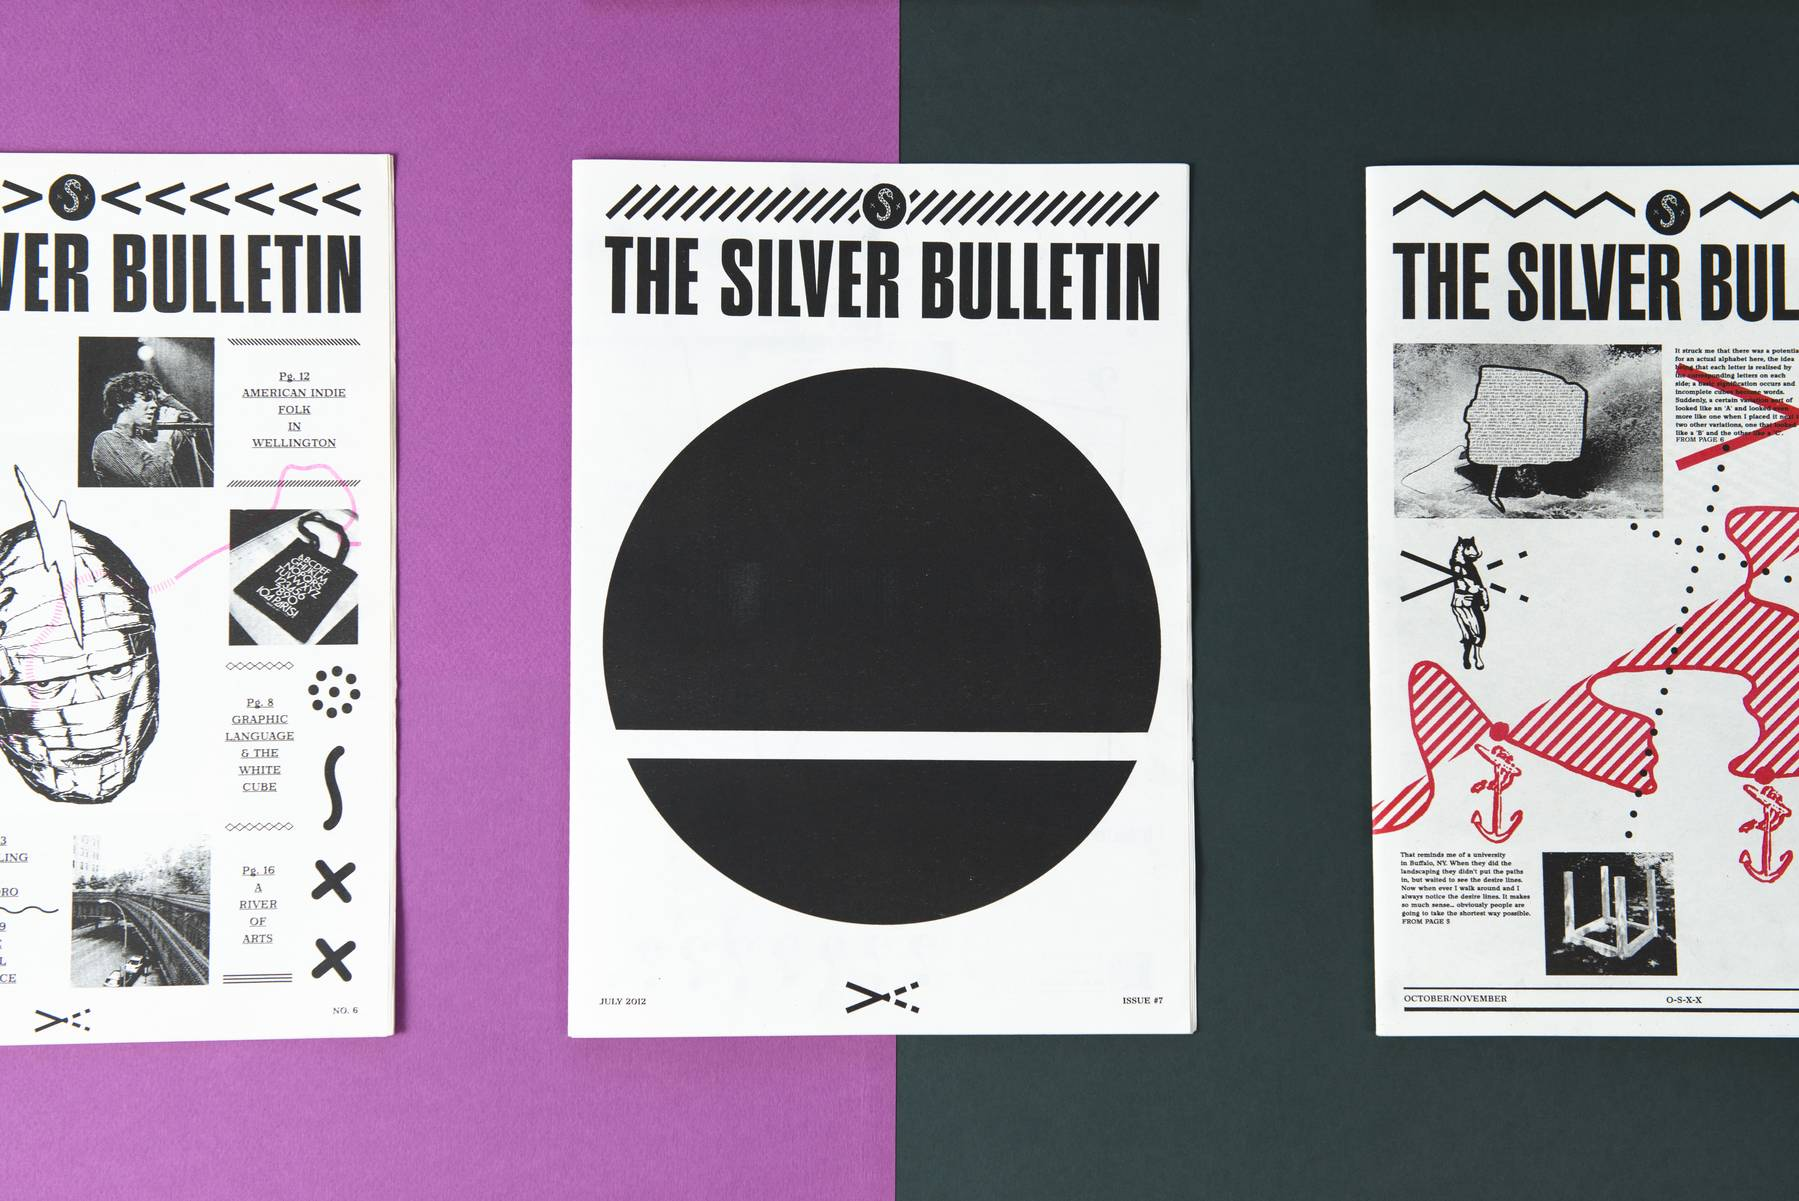 The Silver Bulletin 2012 image